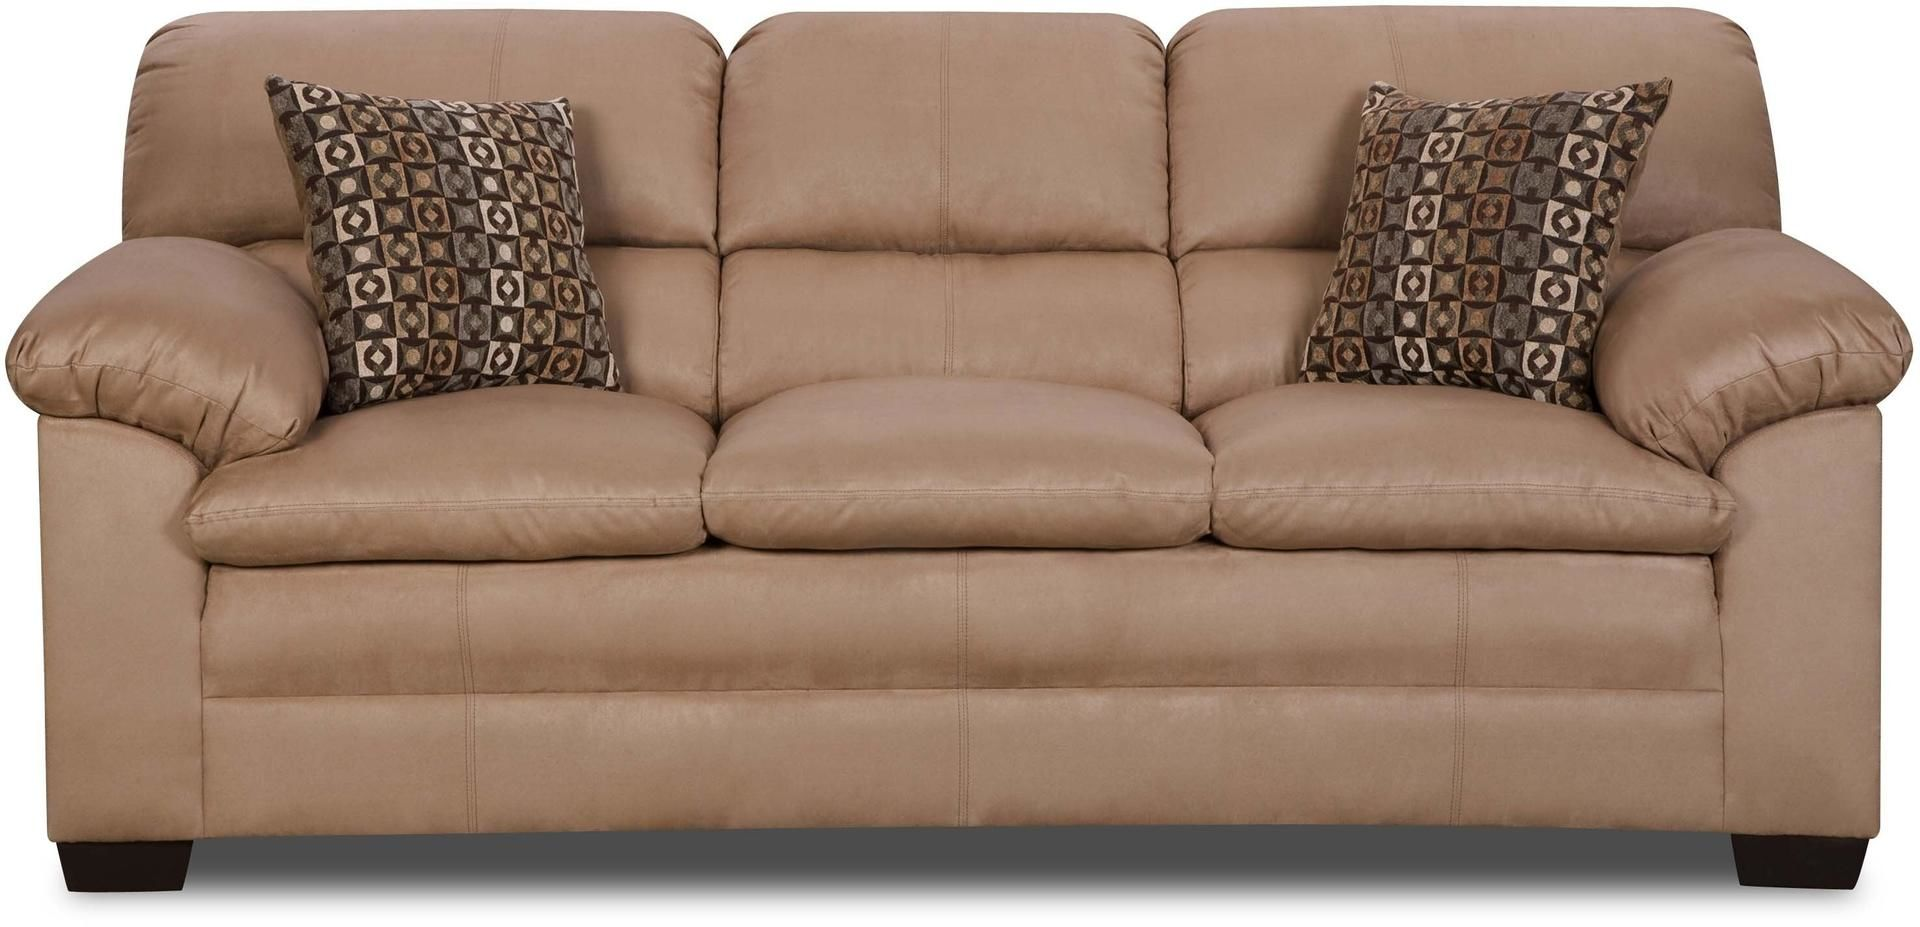 fascinating ashley furniture sofa chaise photo-Stylish ashley Furniture sofa Chaise Décor